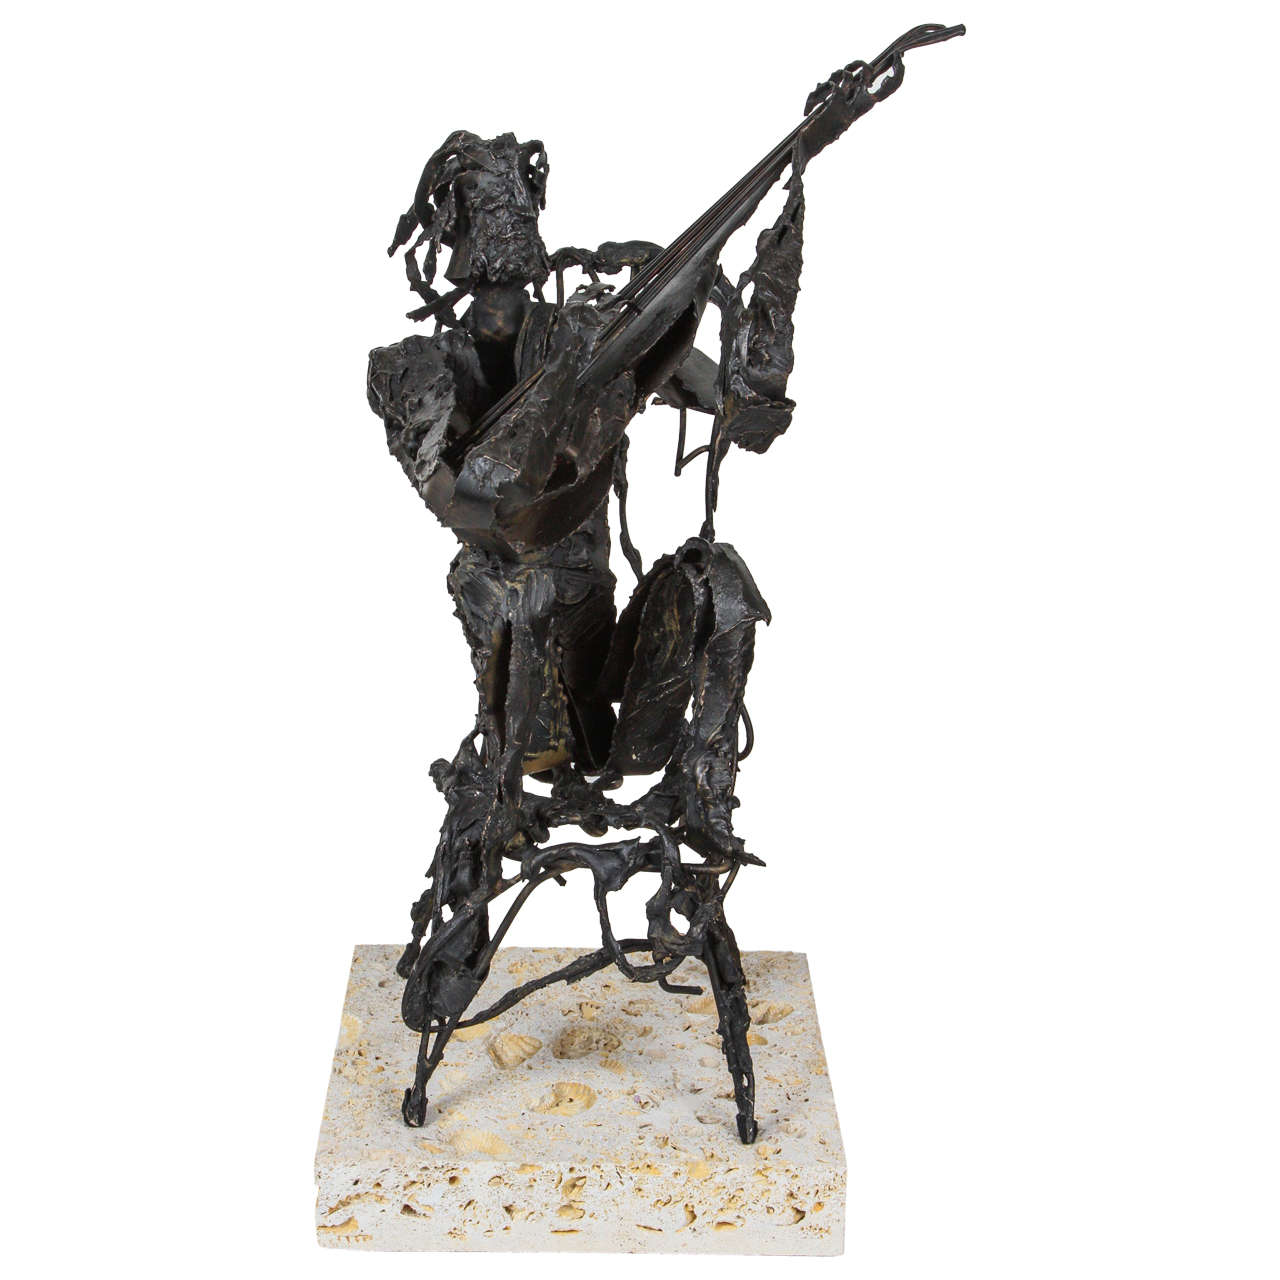 Metal Sculpture of Man Playing Guitar